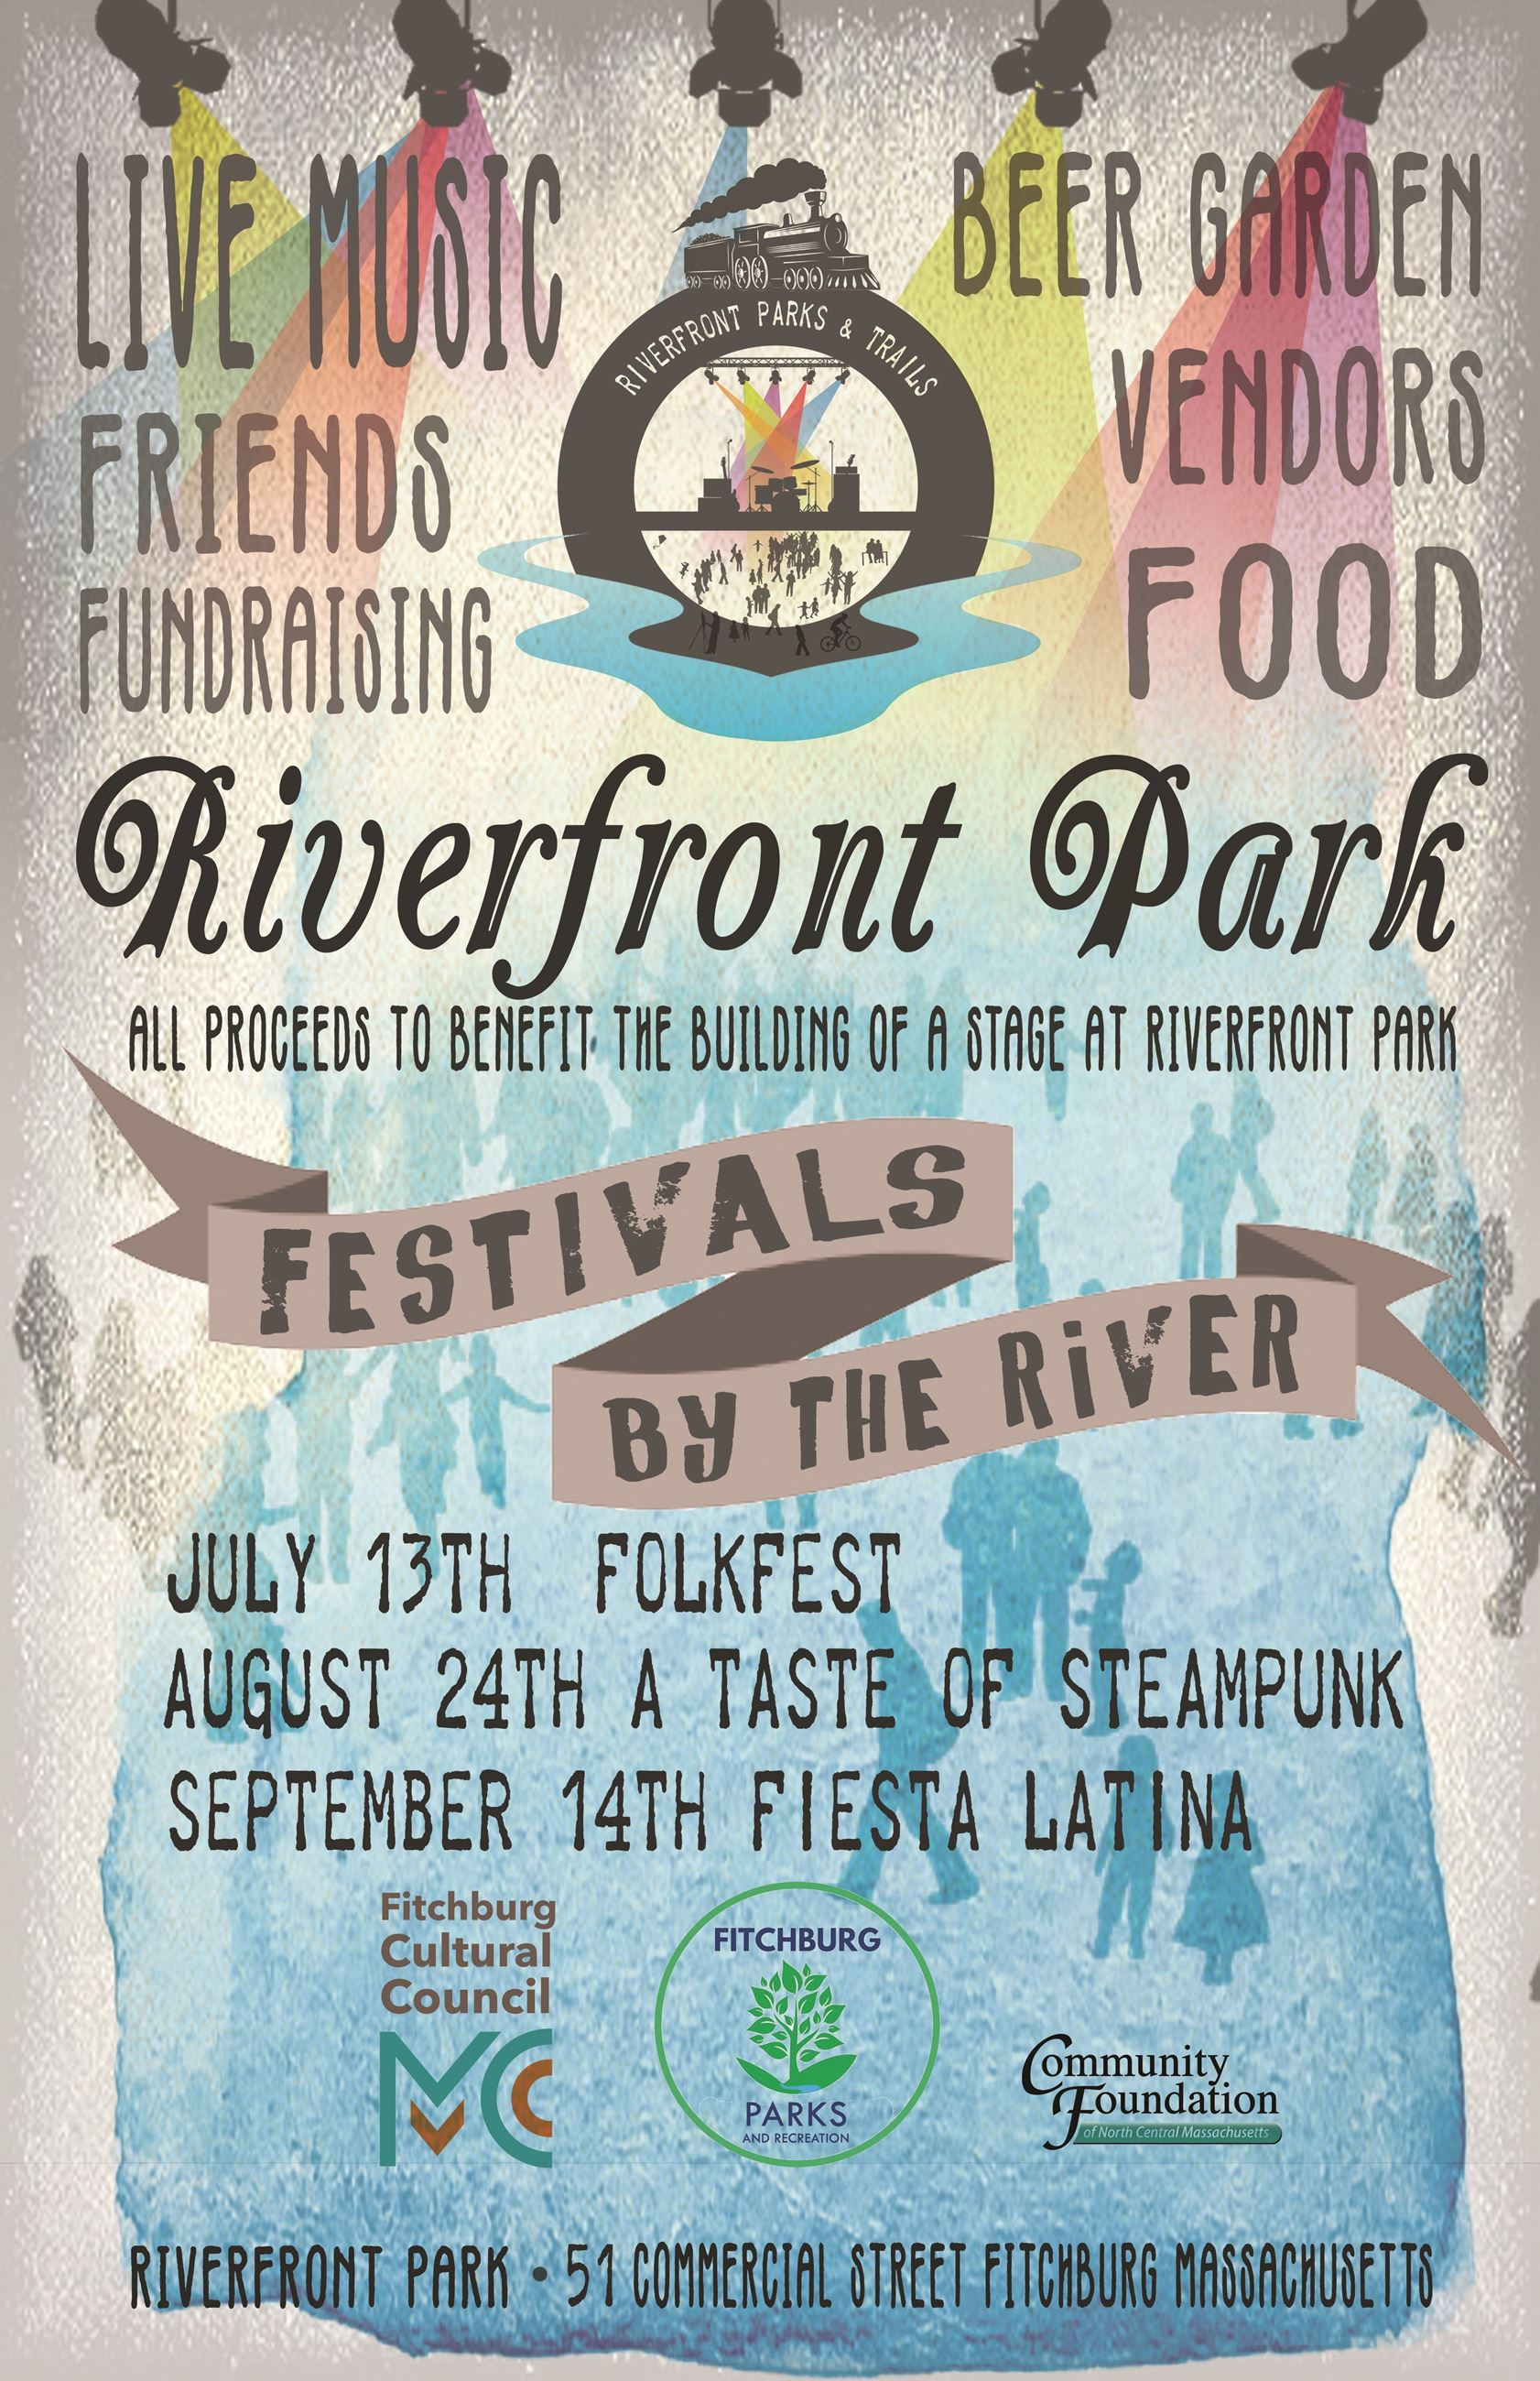 Festivals By the River